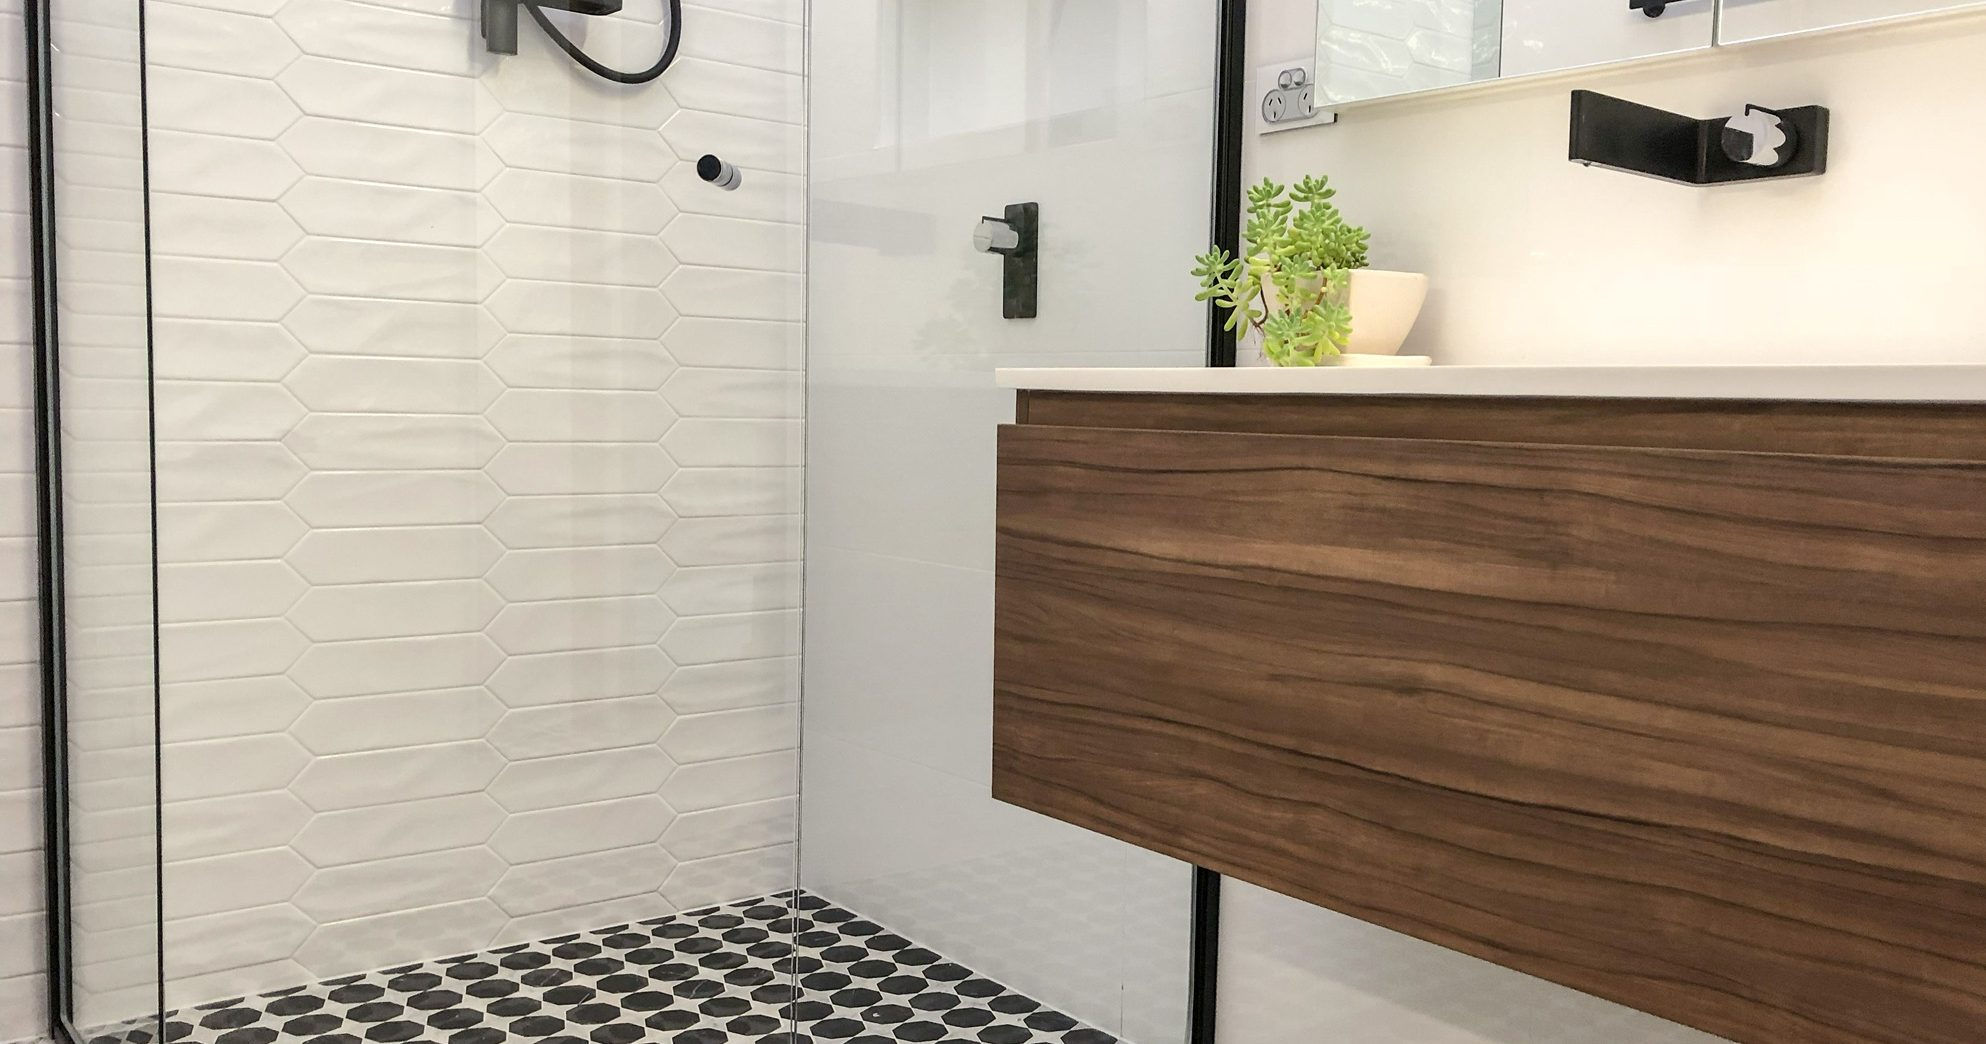 What people want most when doing a Bathroom Renovation